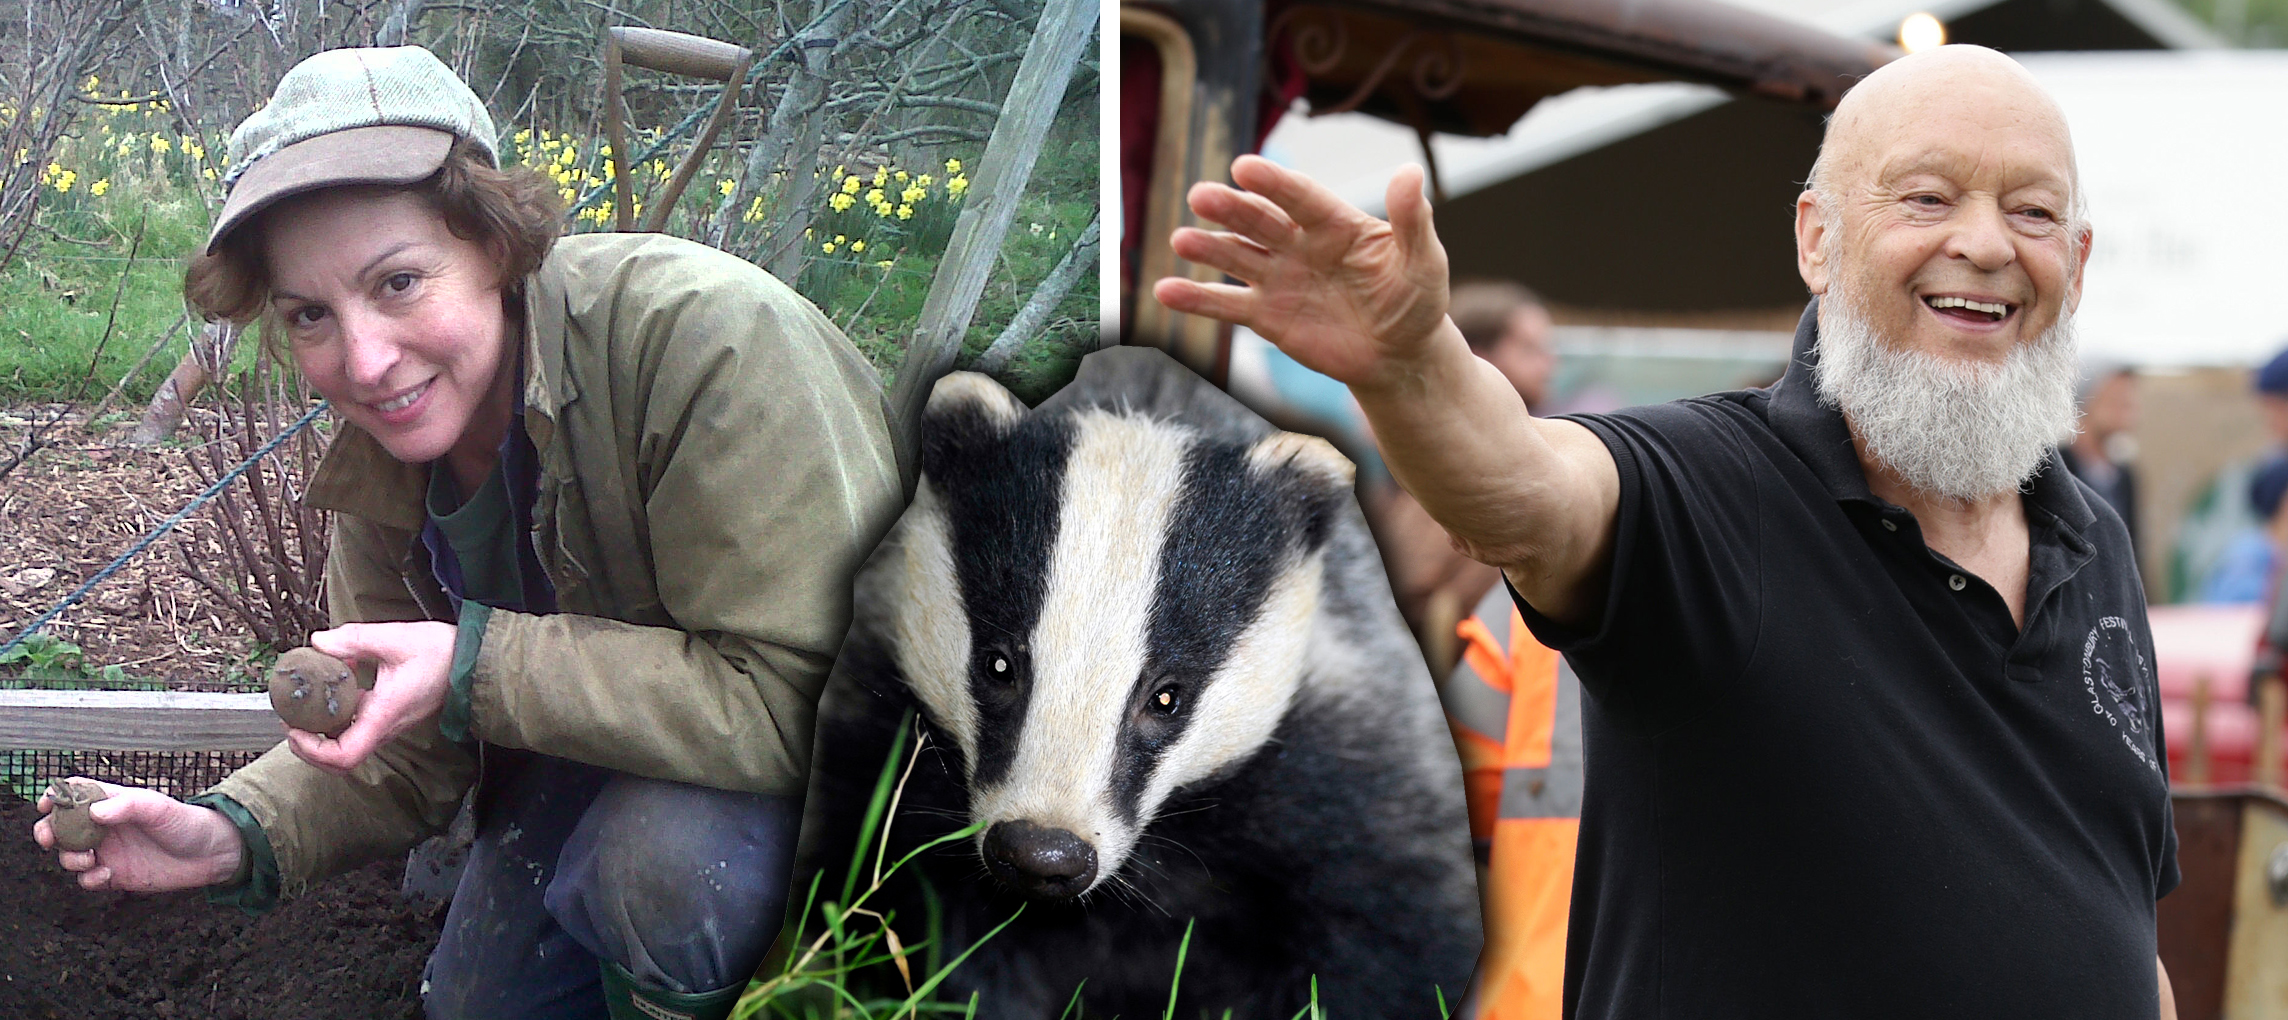 RESIGN: Rebecca Pow and Michael Eavis leave Somerset Wildlife Trust. Picture: Ben Birchall/PA Wire.